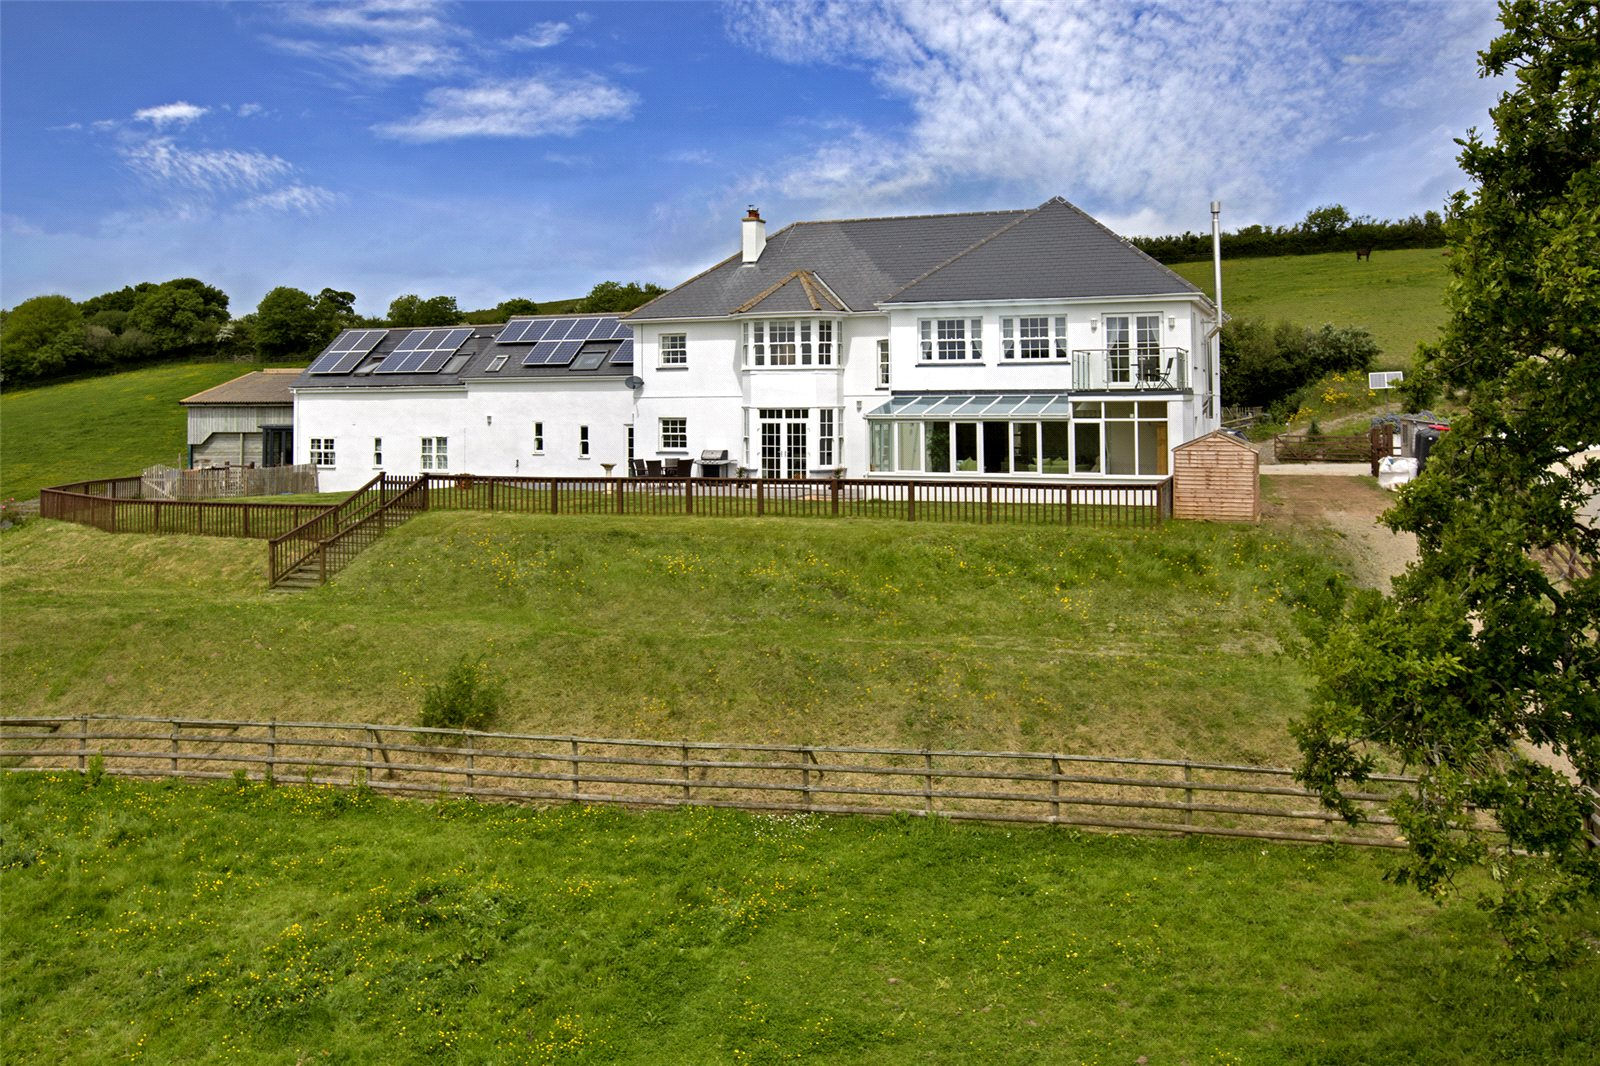 Single Family Home for Sale at Dunsford, Exeter, Devon, EX6 Exeter, England